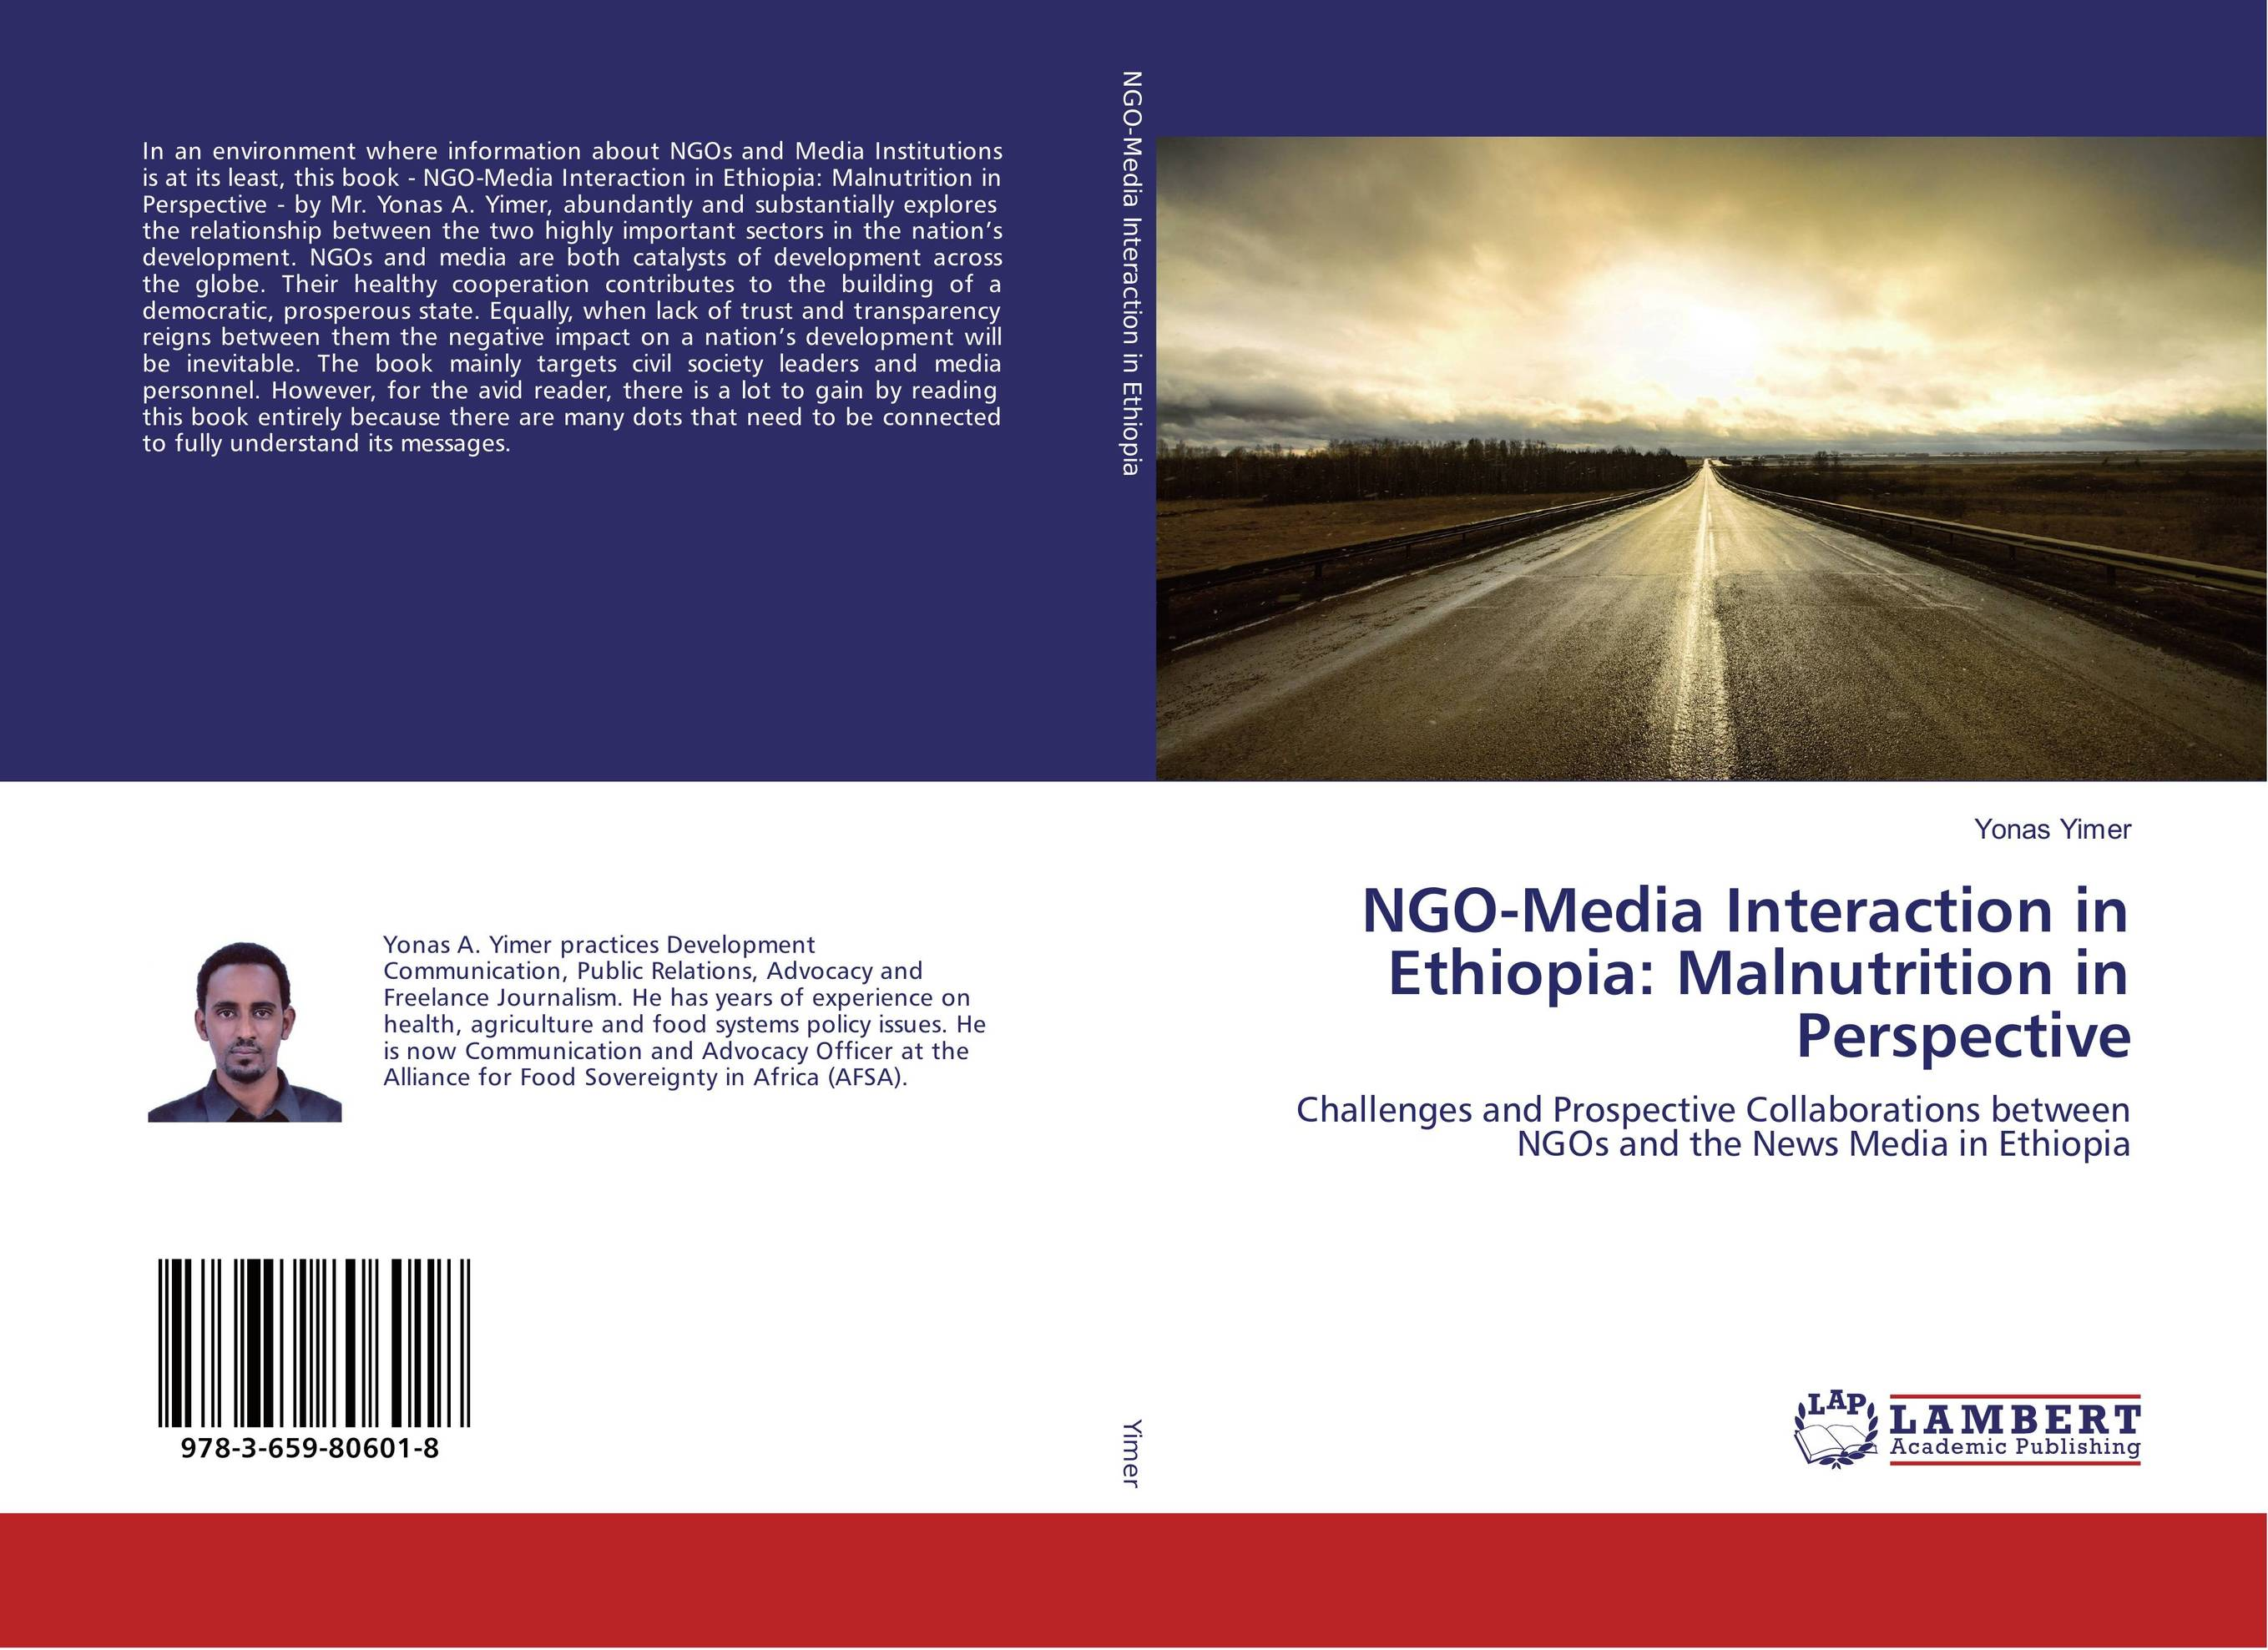 NGO-Media Interaction in Ethiopia: Malnutrition in Perspective ngos